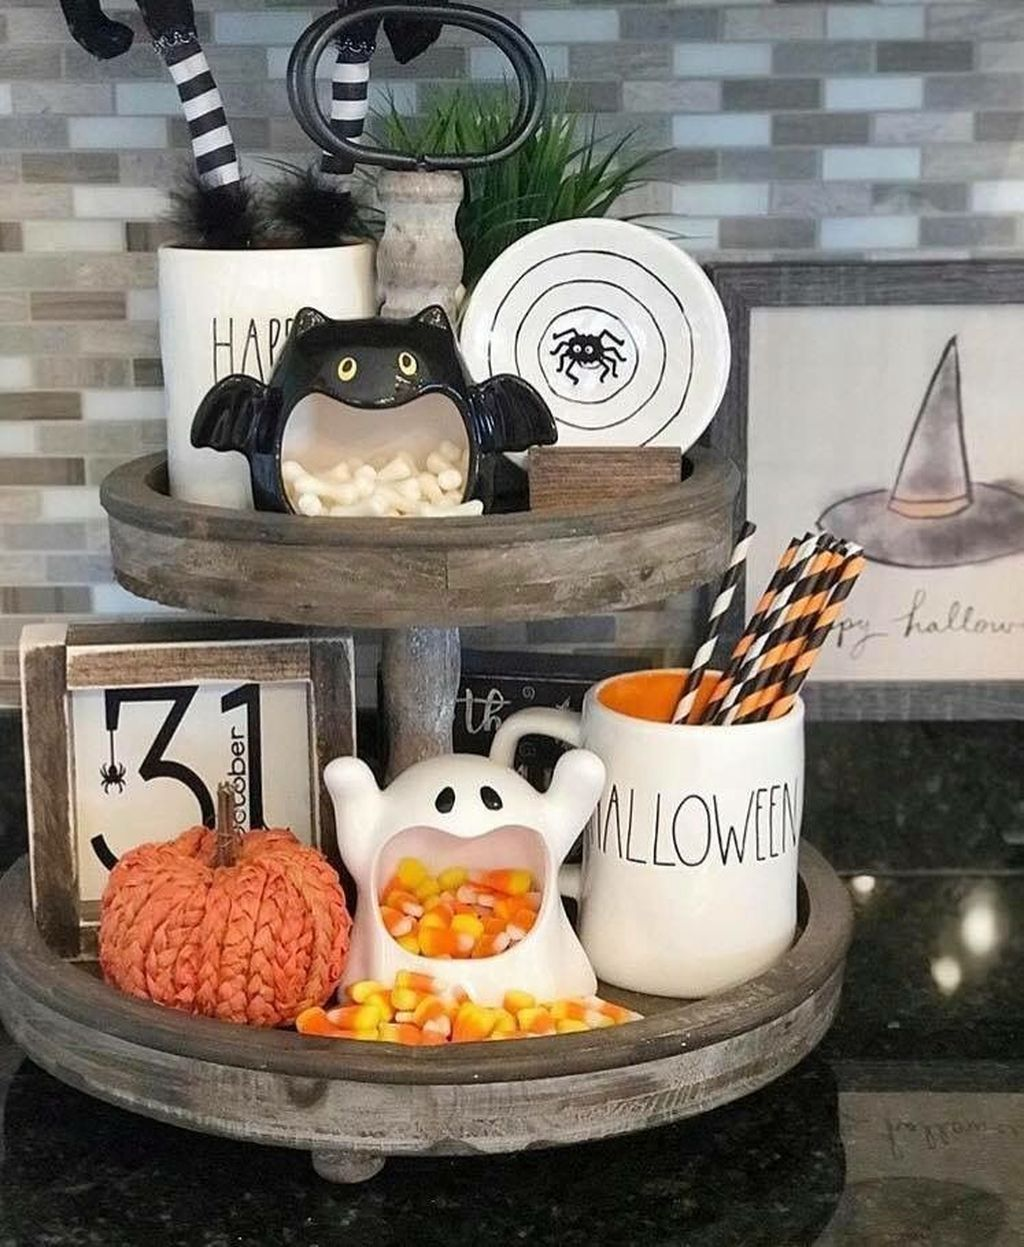 Awesome 30+ Spooky Touch For Your Kitchen Decoration On Halloween#awesome #decoration #halloween #kitchen #spooky #touch